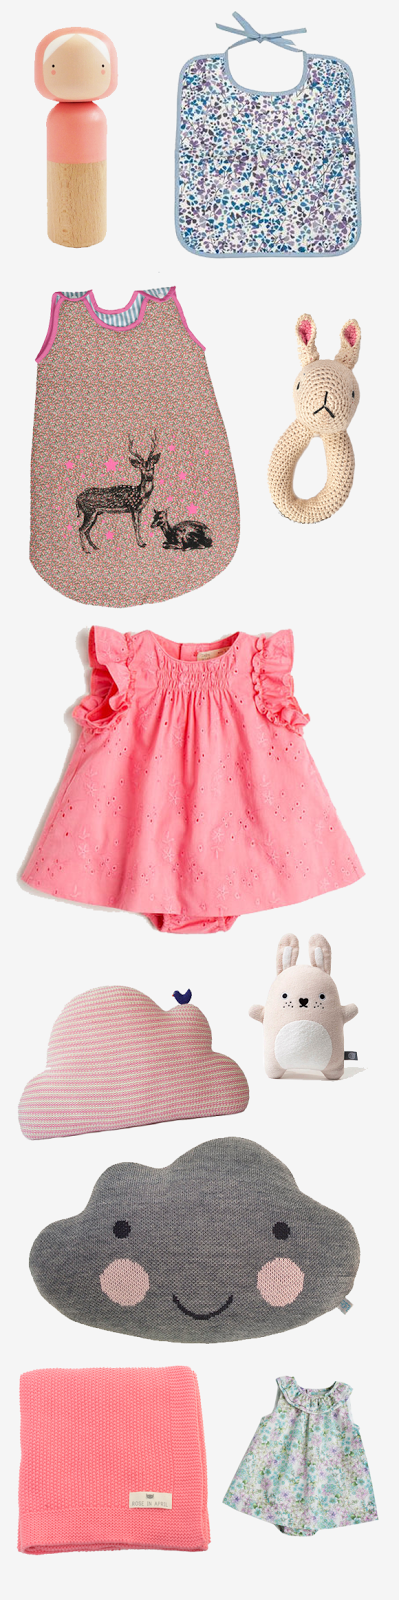 my baby wishlist